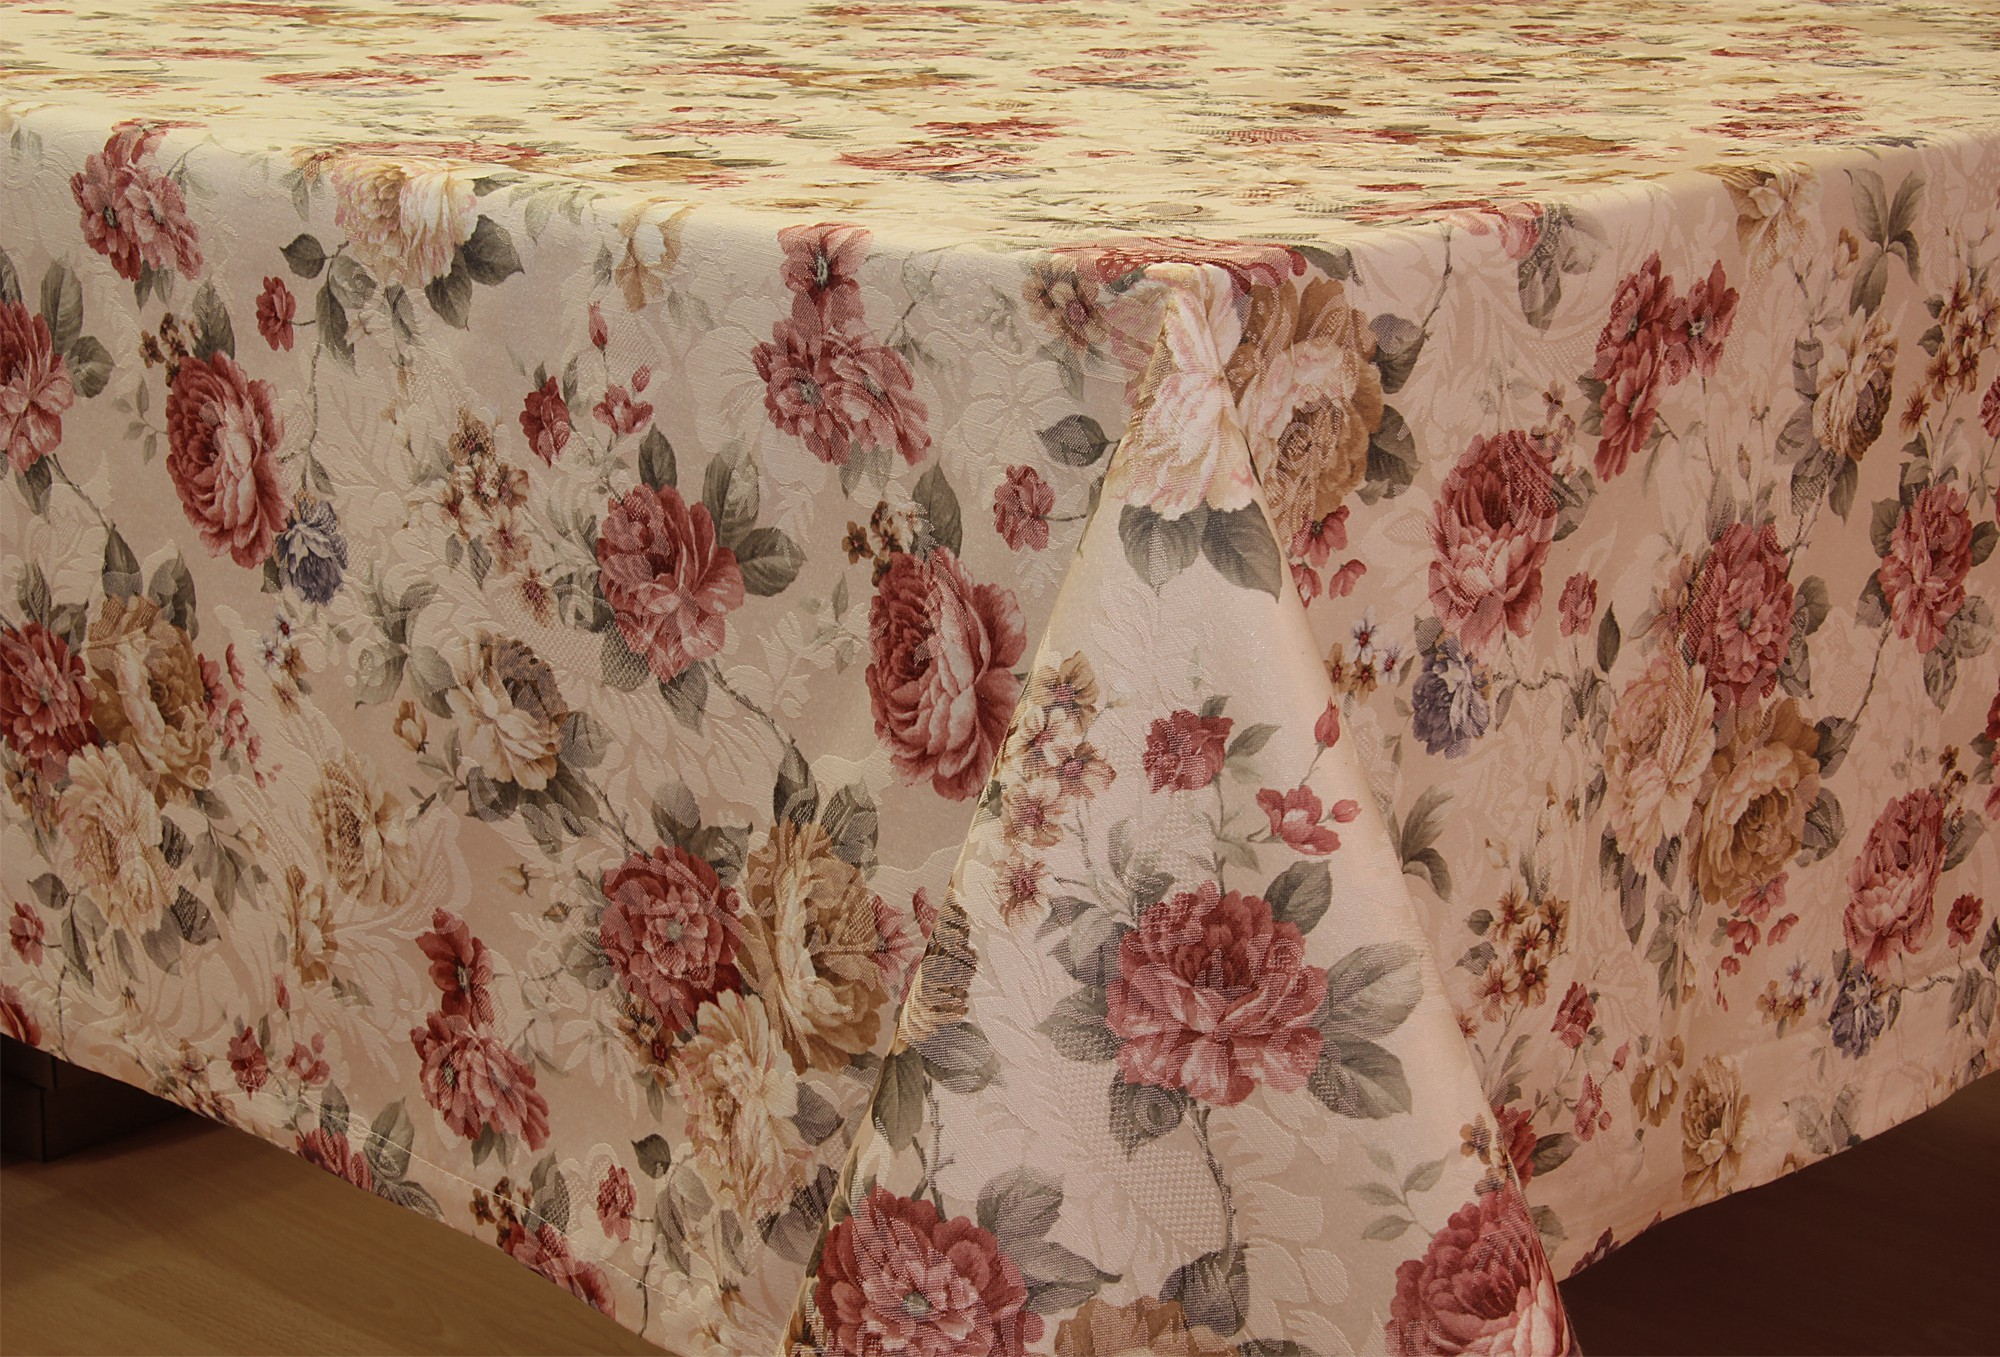 Noble Jacquard Roses Table Runner Tablecloth Cushion Cover